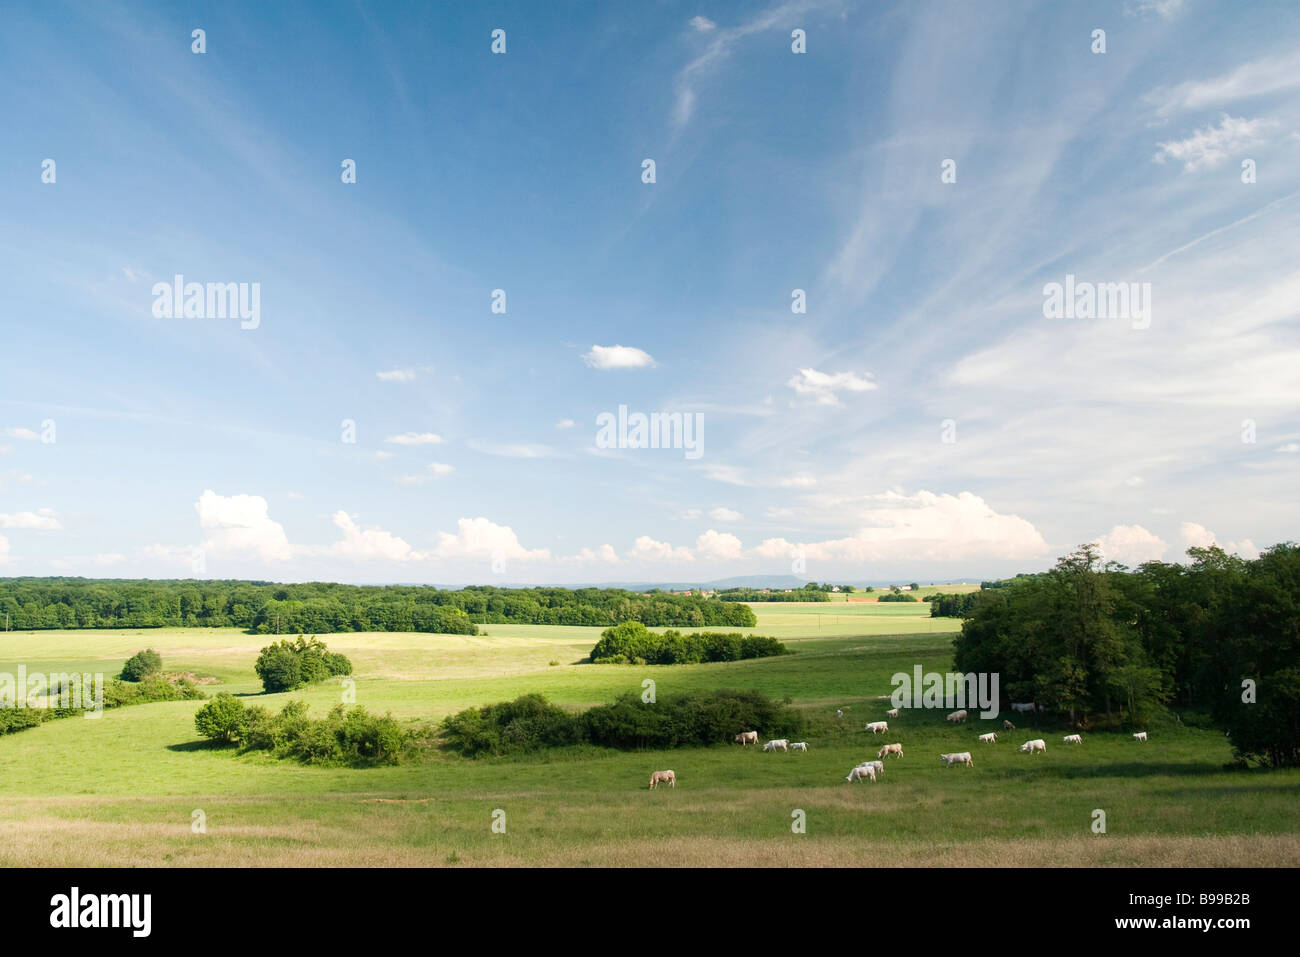 Scenic countryside with cattle grazing in distance - Stock Image